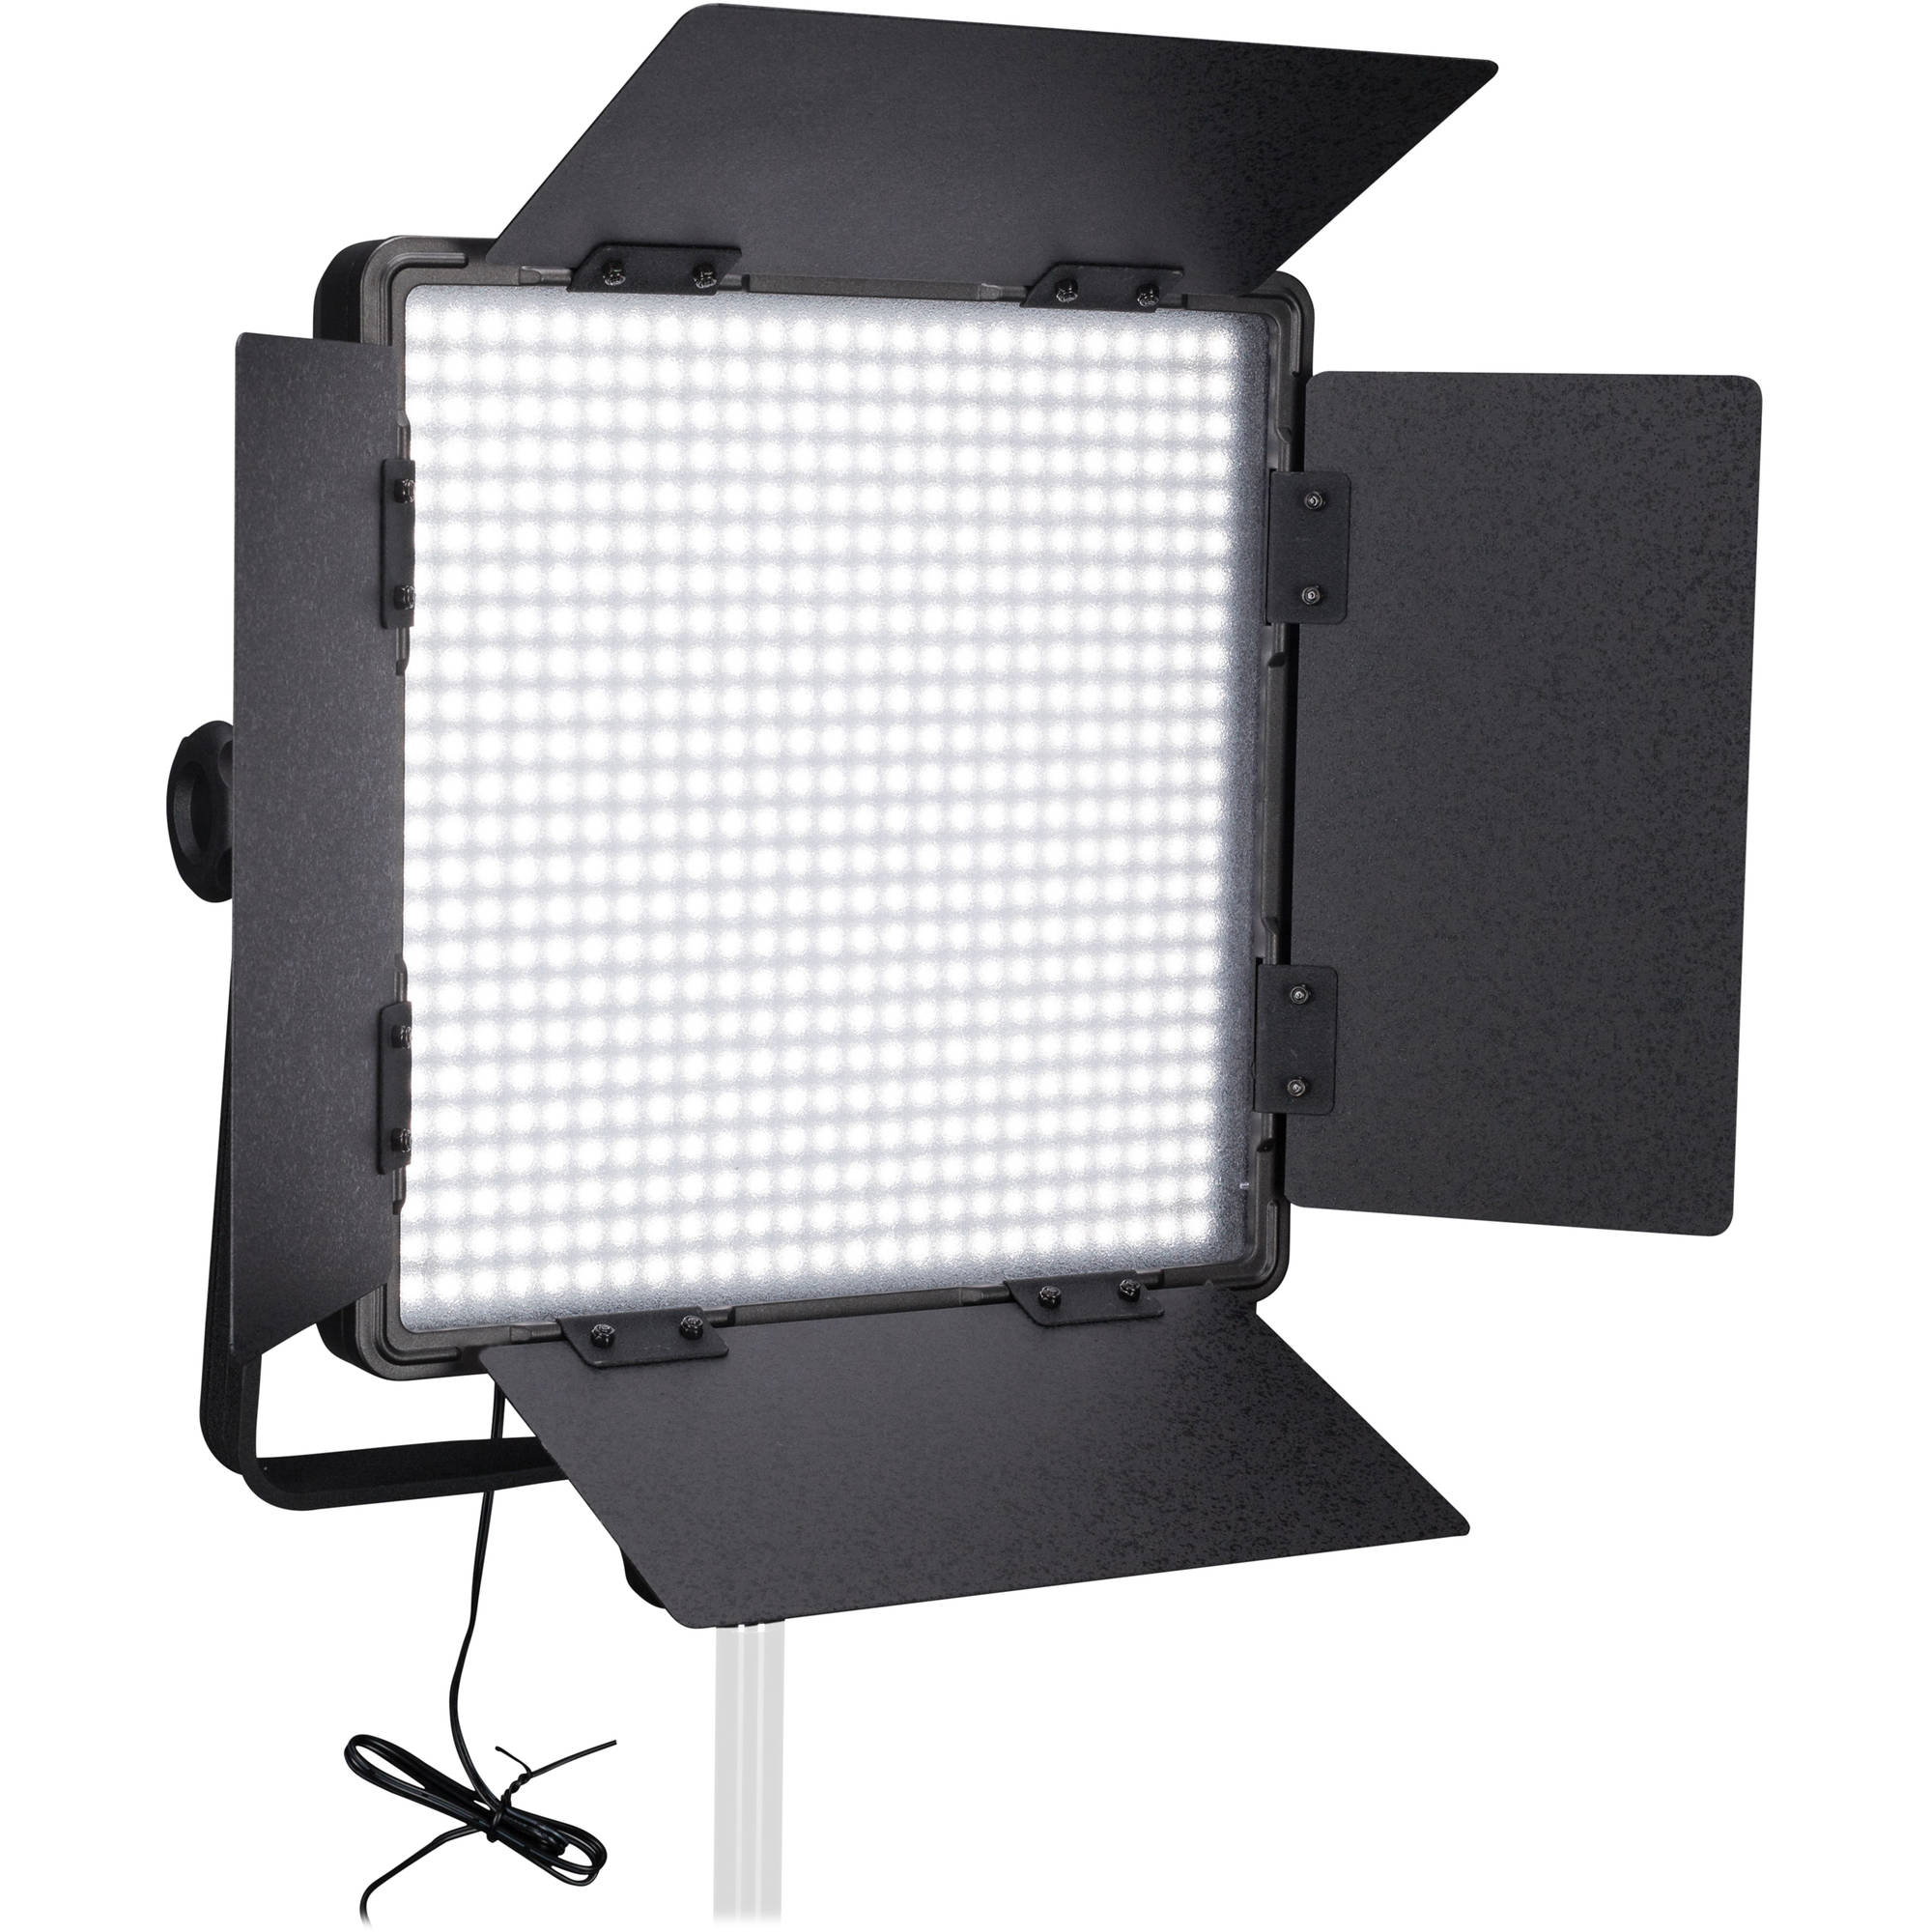 NanLite 600BSA Bicolor LED Panel